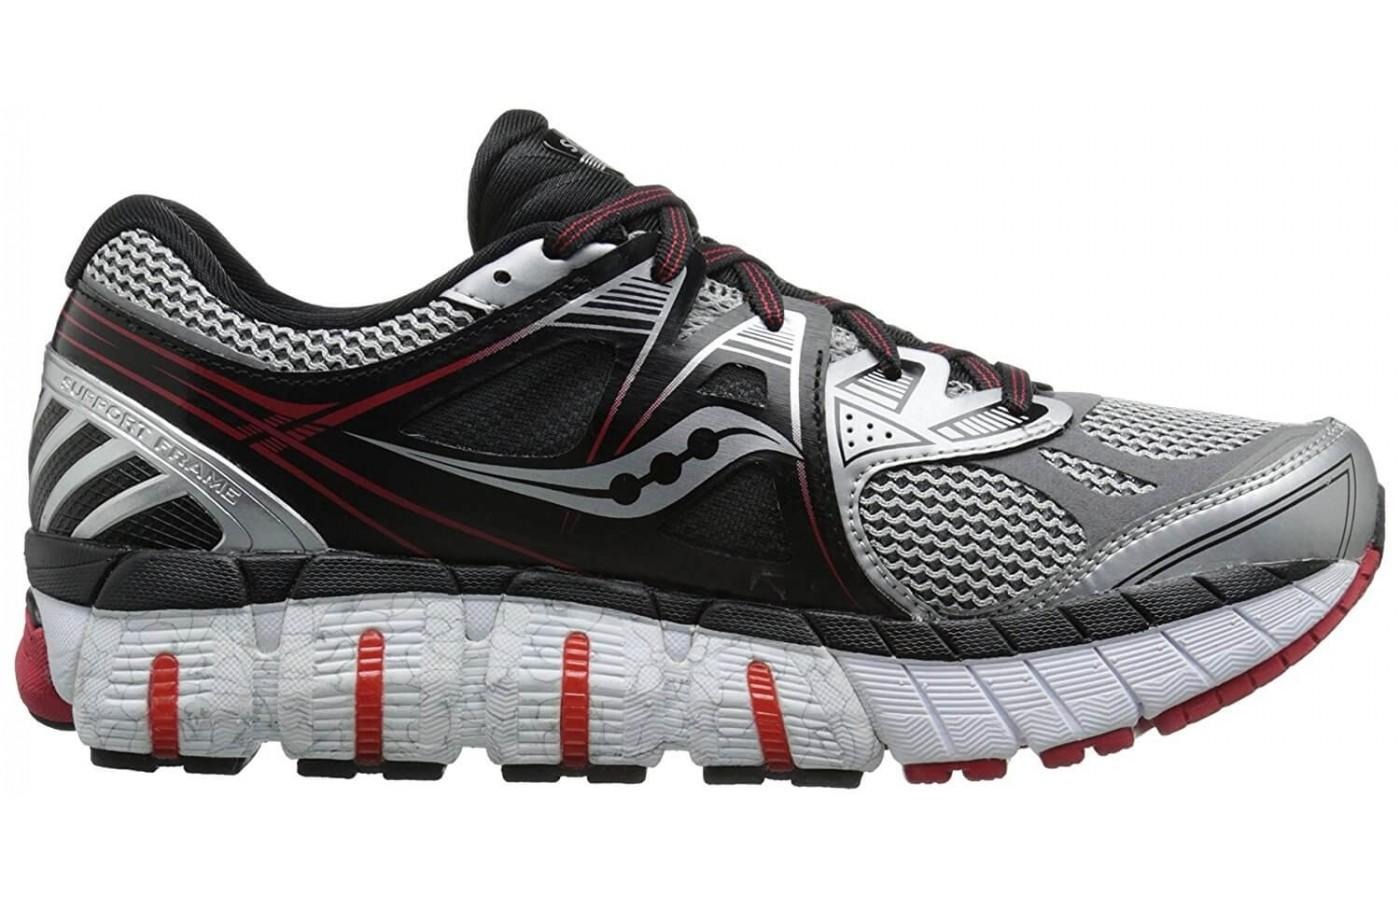 2d31ffef6c79 ... Saucony Redeemer ISO features are perfect for overpronators ...